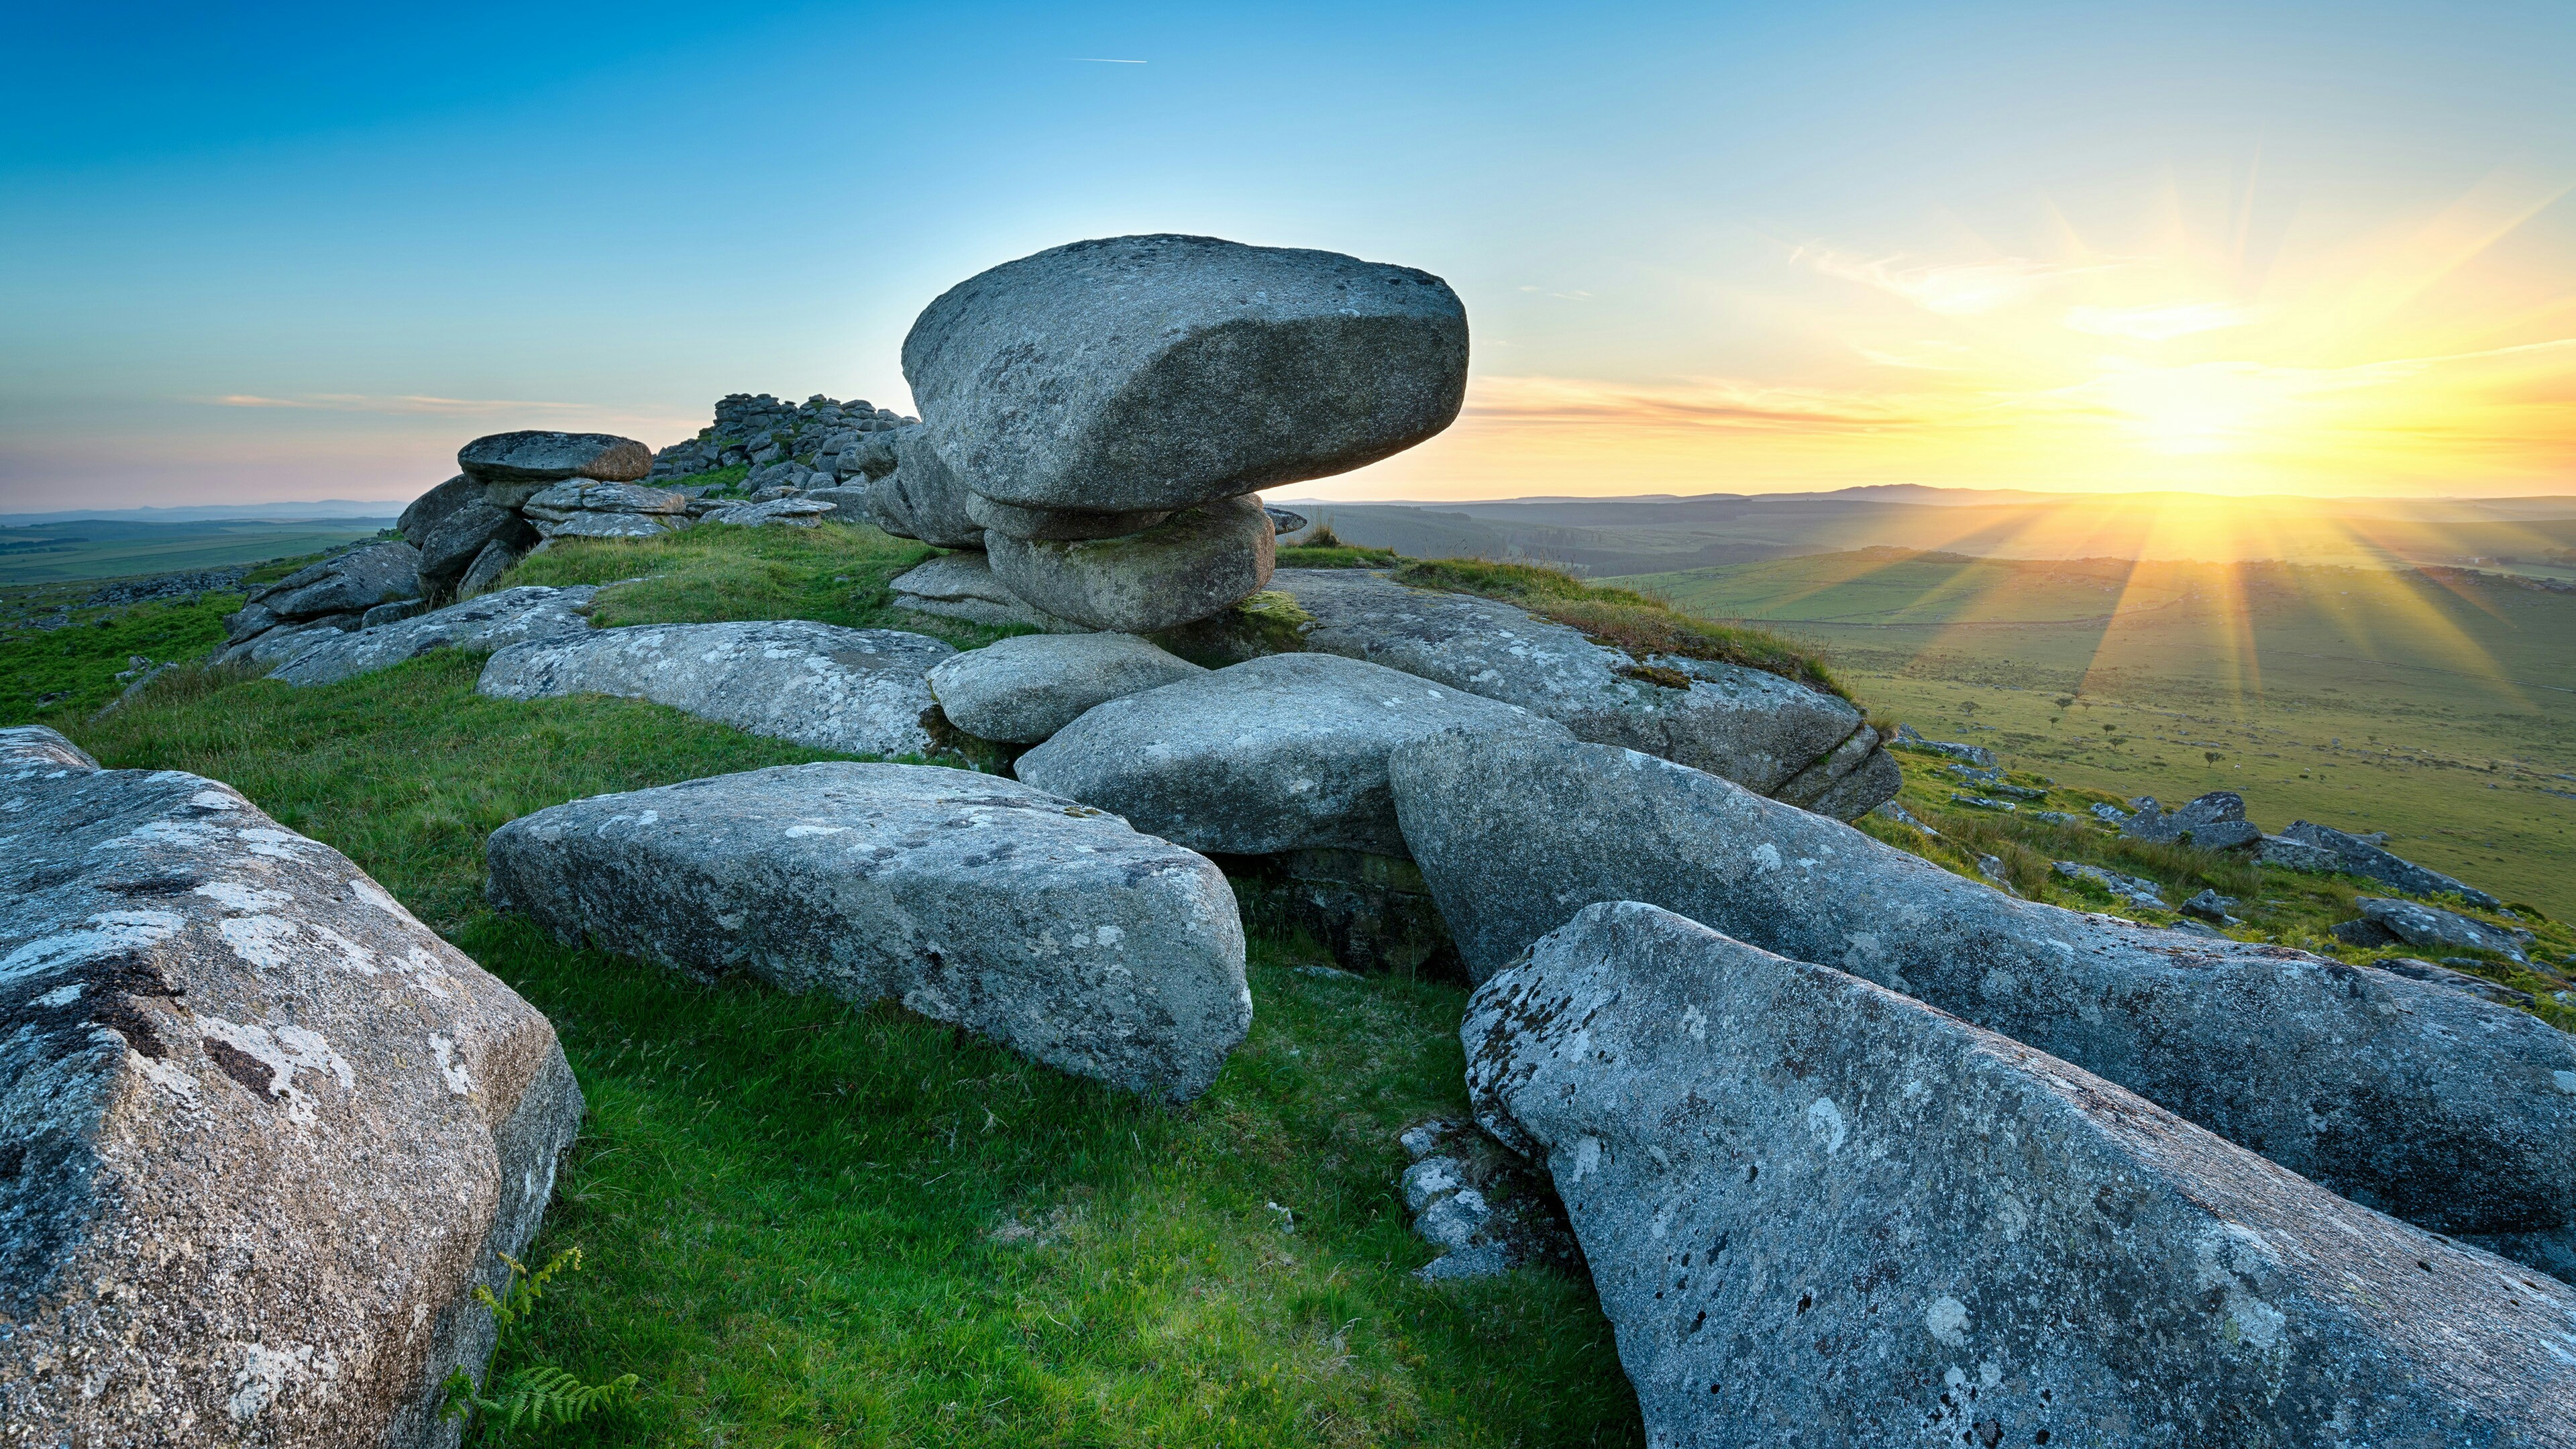 Res: 3840x2160, Kilmar Tor On Bodmin Moor In Cornwall Wallpaper | Wallpaper Studio 10 |  Tens of thousands HD and UltraHD wallpapers for Android, Windows and Xbox